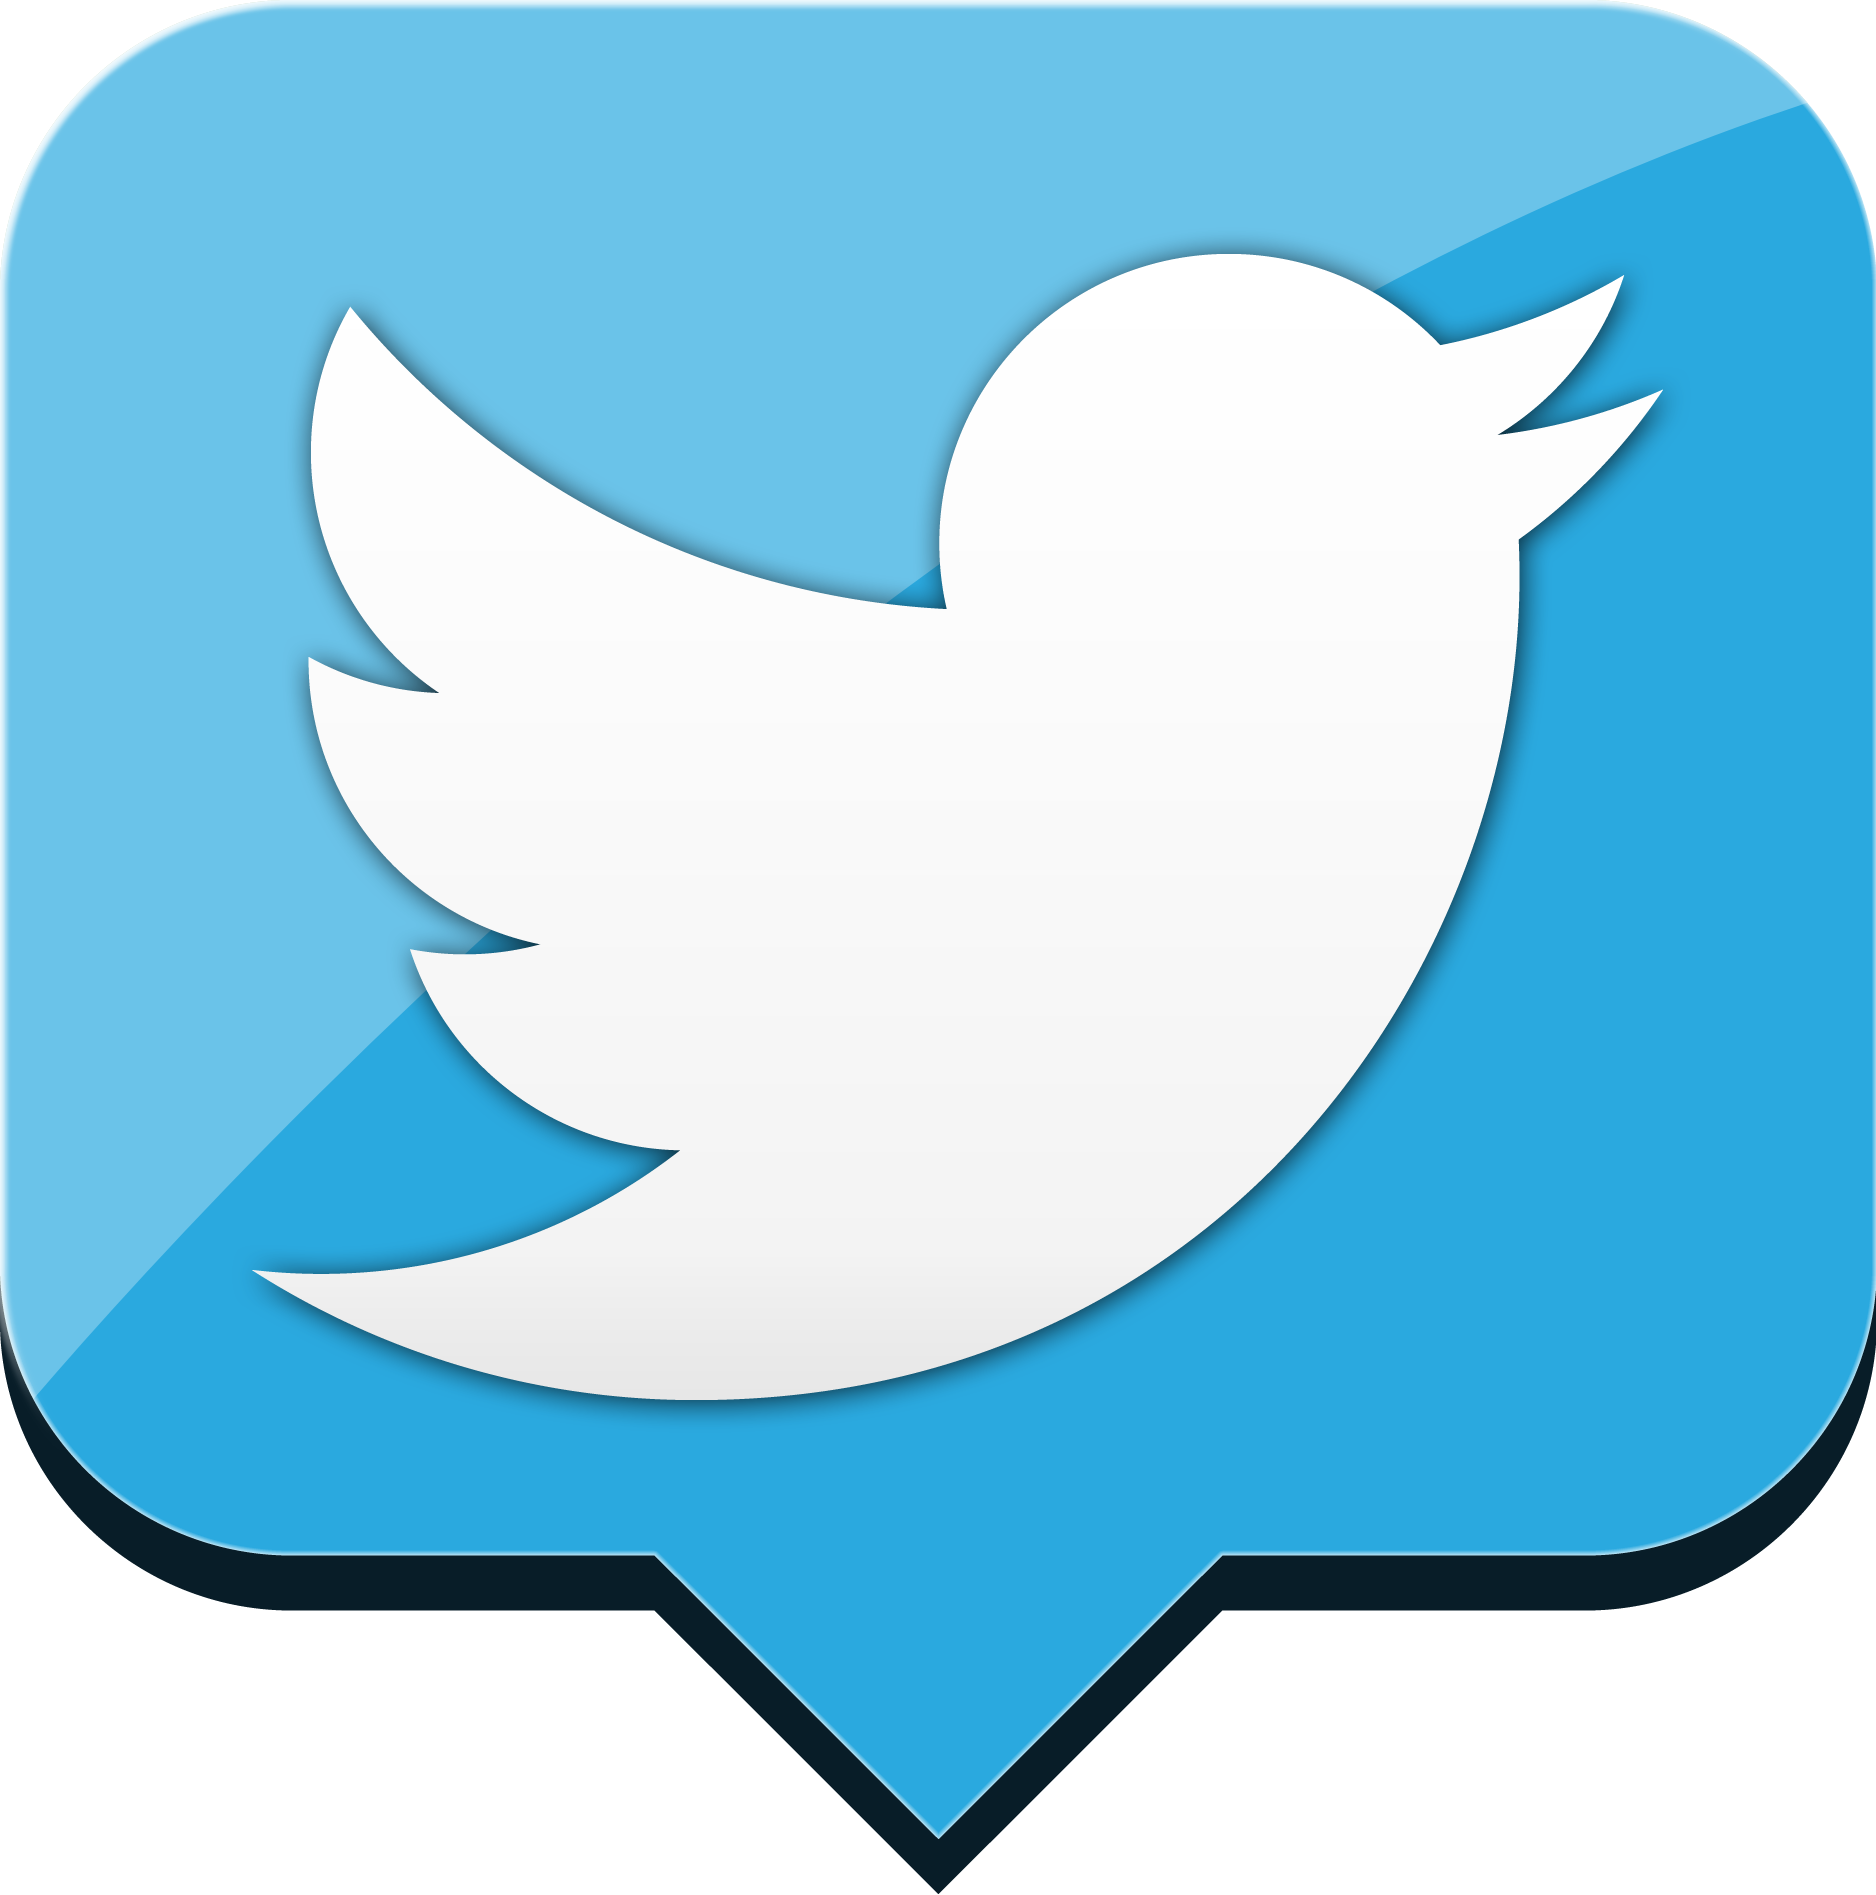 Twitter Free PNG Image - Twitter Clipart